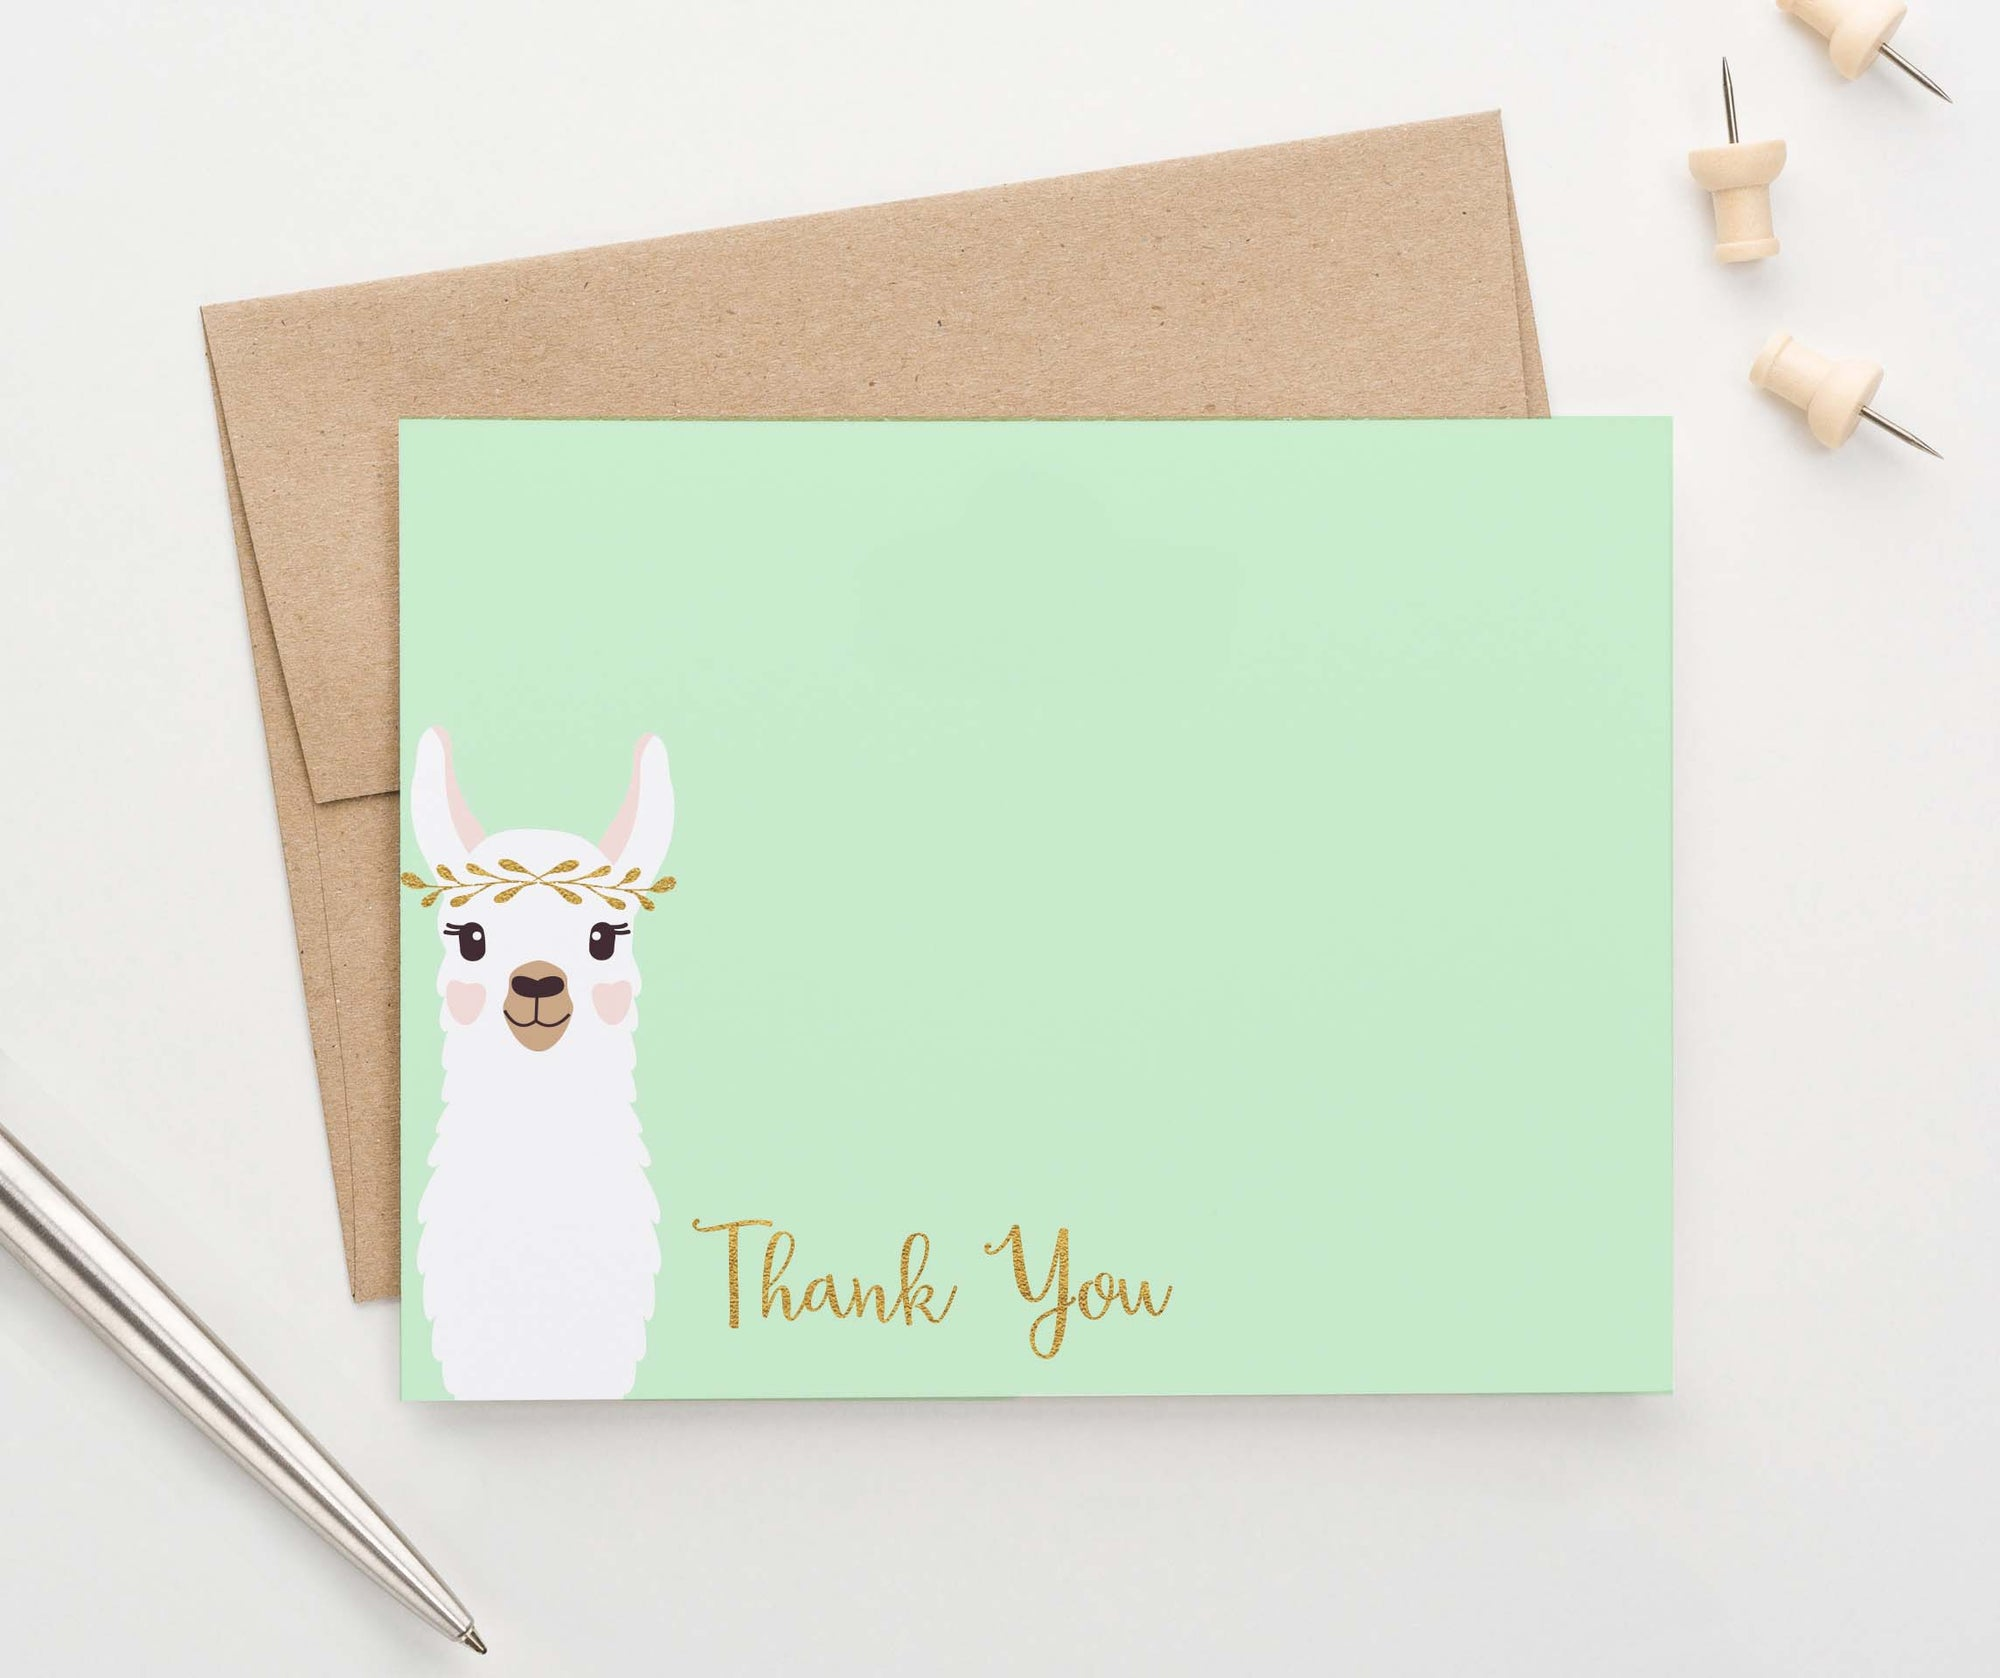 TY042 cute llama flat thank you notes for kids birthday gold script